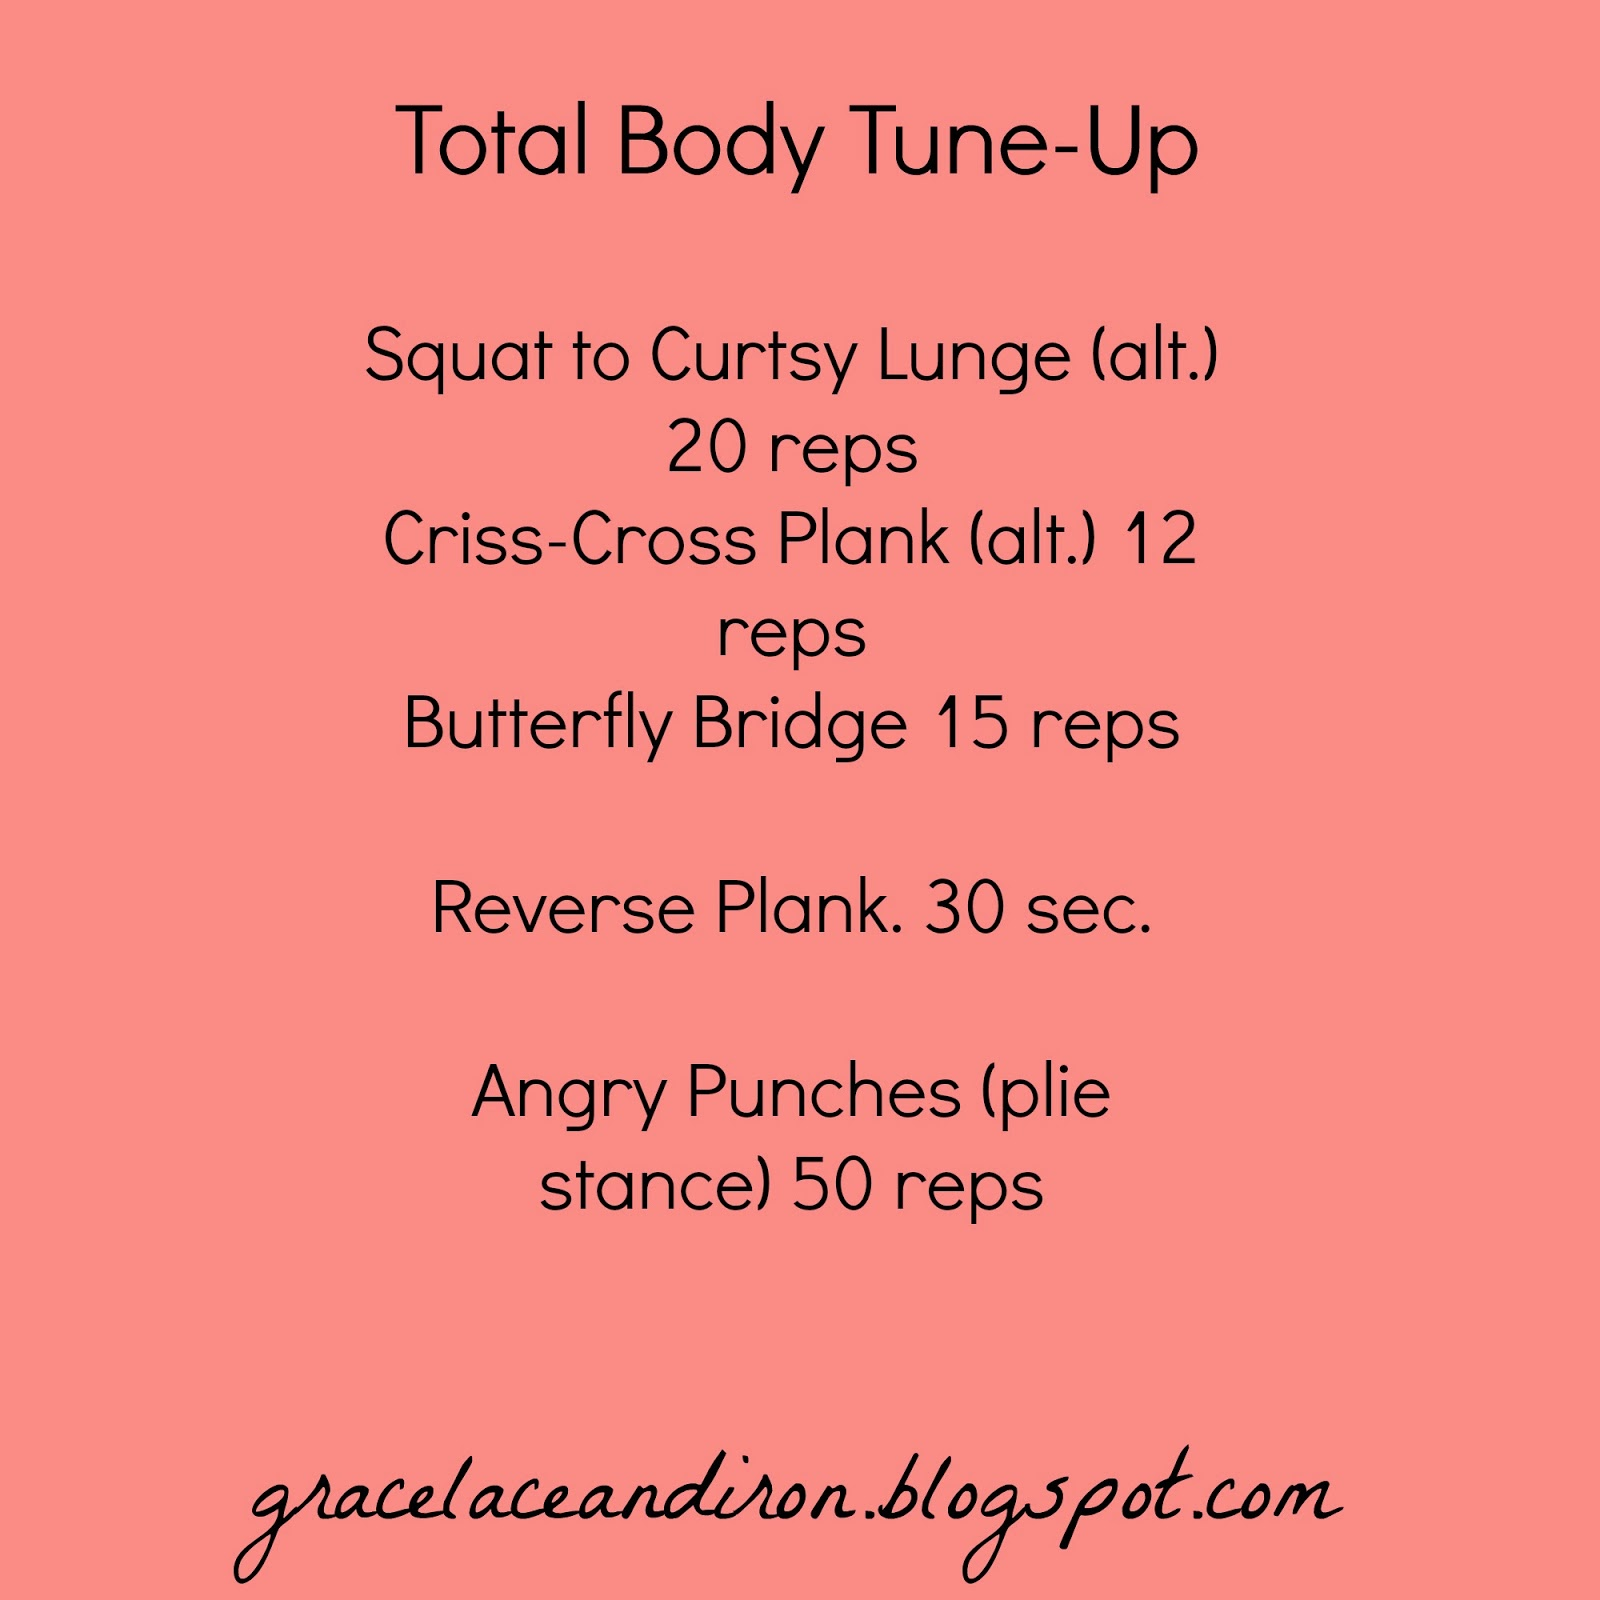 Five Feet Apart Julie: Grace, Lace, And Iron: Workout Wednesday: Total Body Tune-up